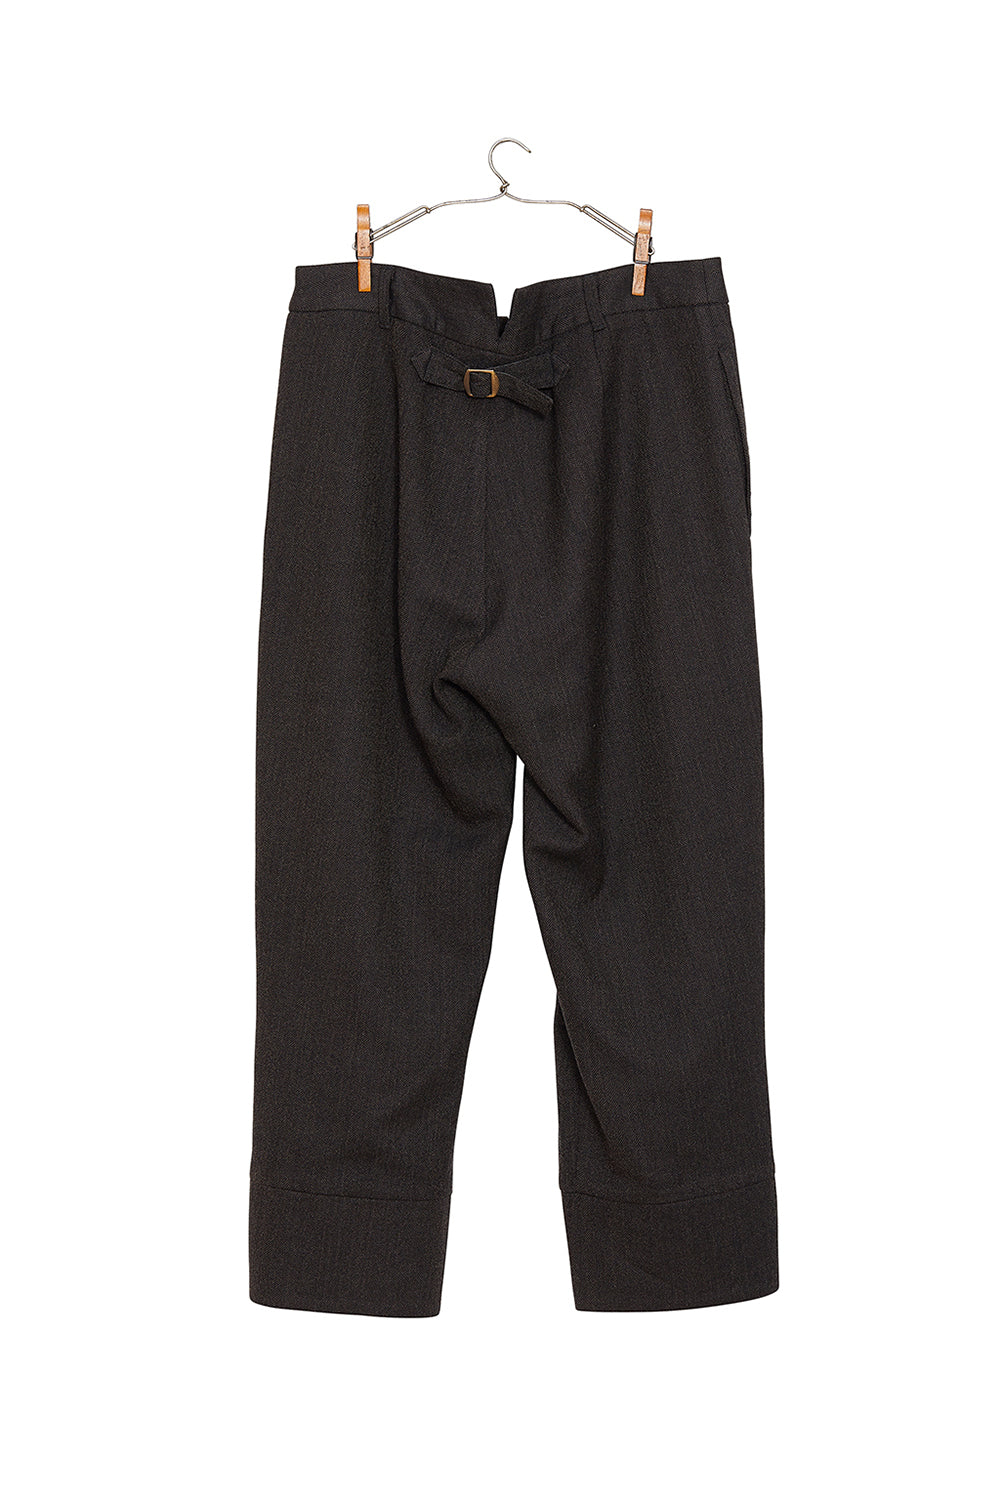 Buckle Back Cropped Herringbone Wool Trousers